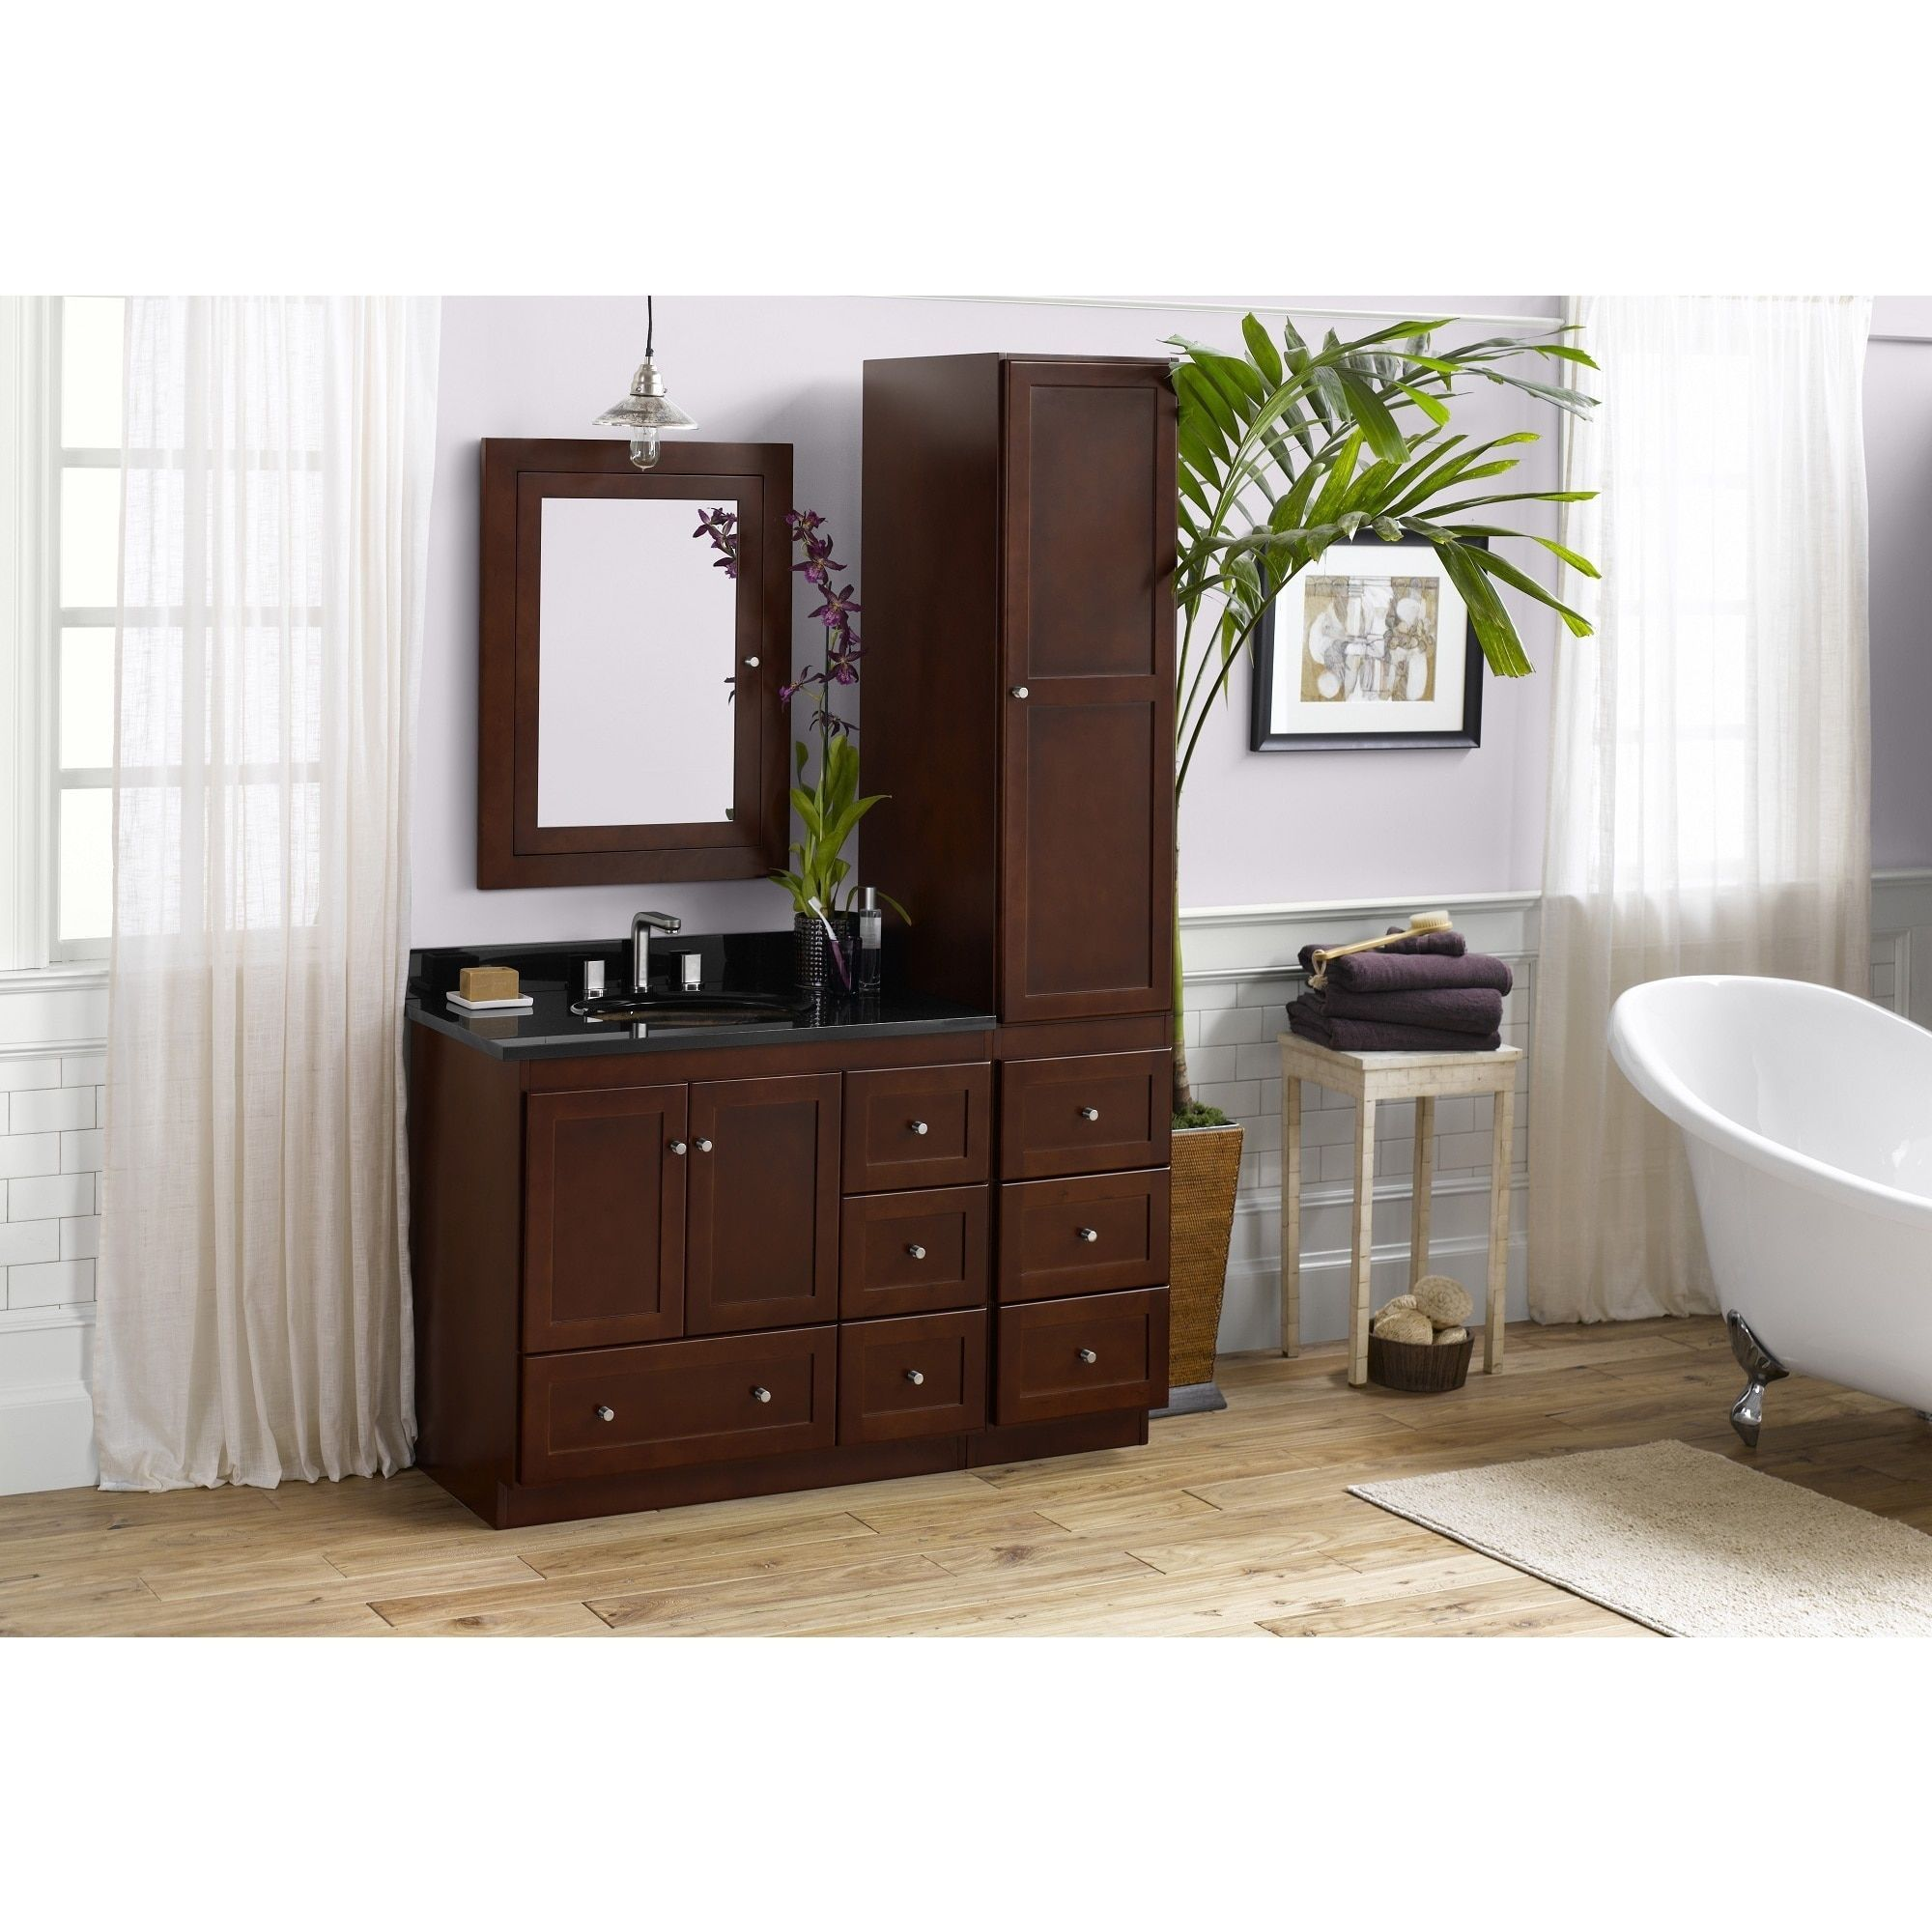 Ronbow Shaker 36 Inch Bathroom Vanity Set In Dark Cherry With Medicine Cabinet And Linen Tower